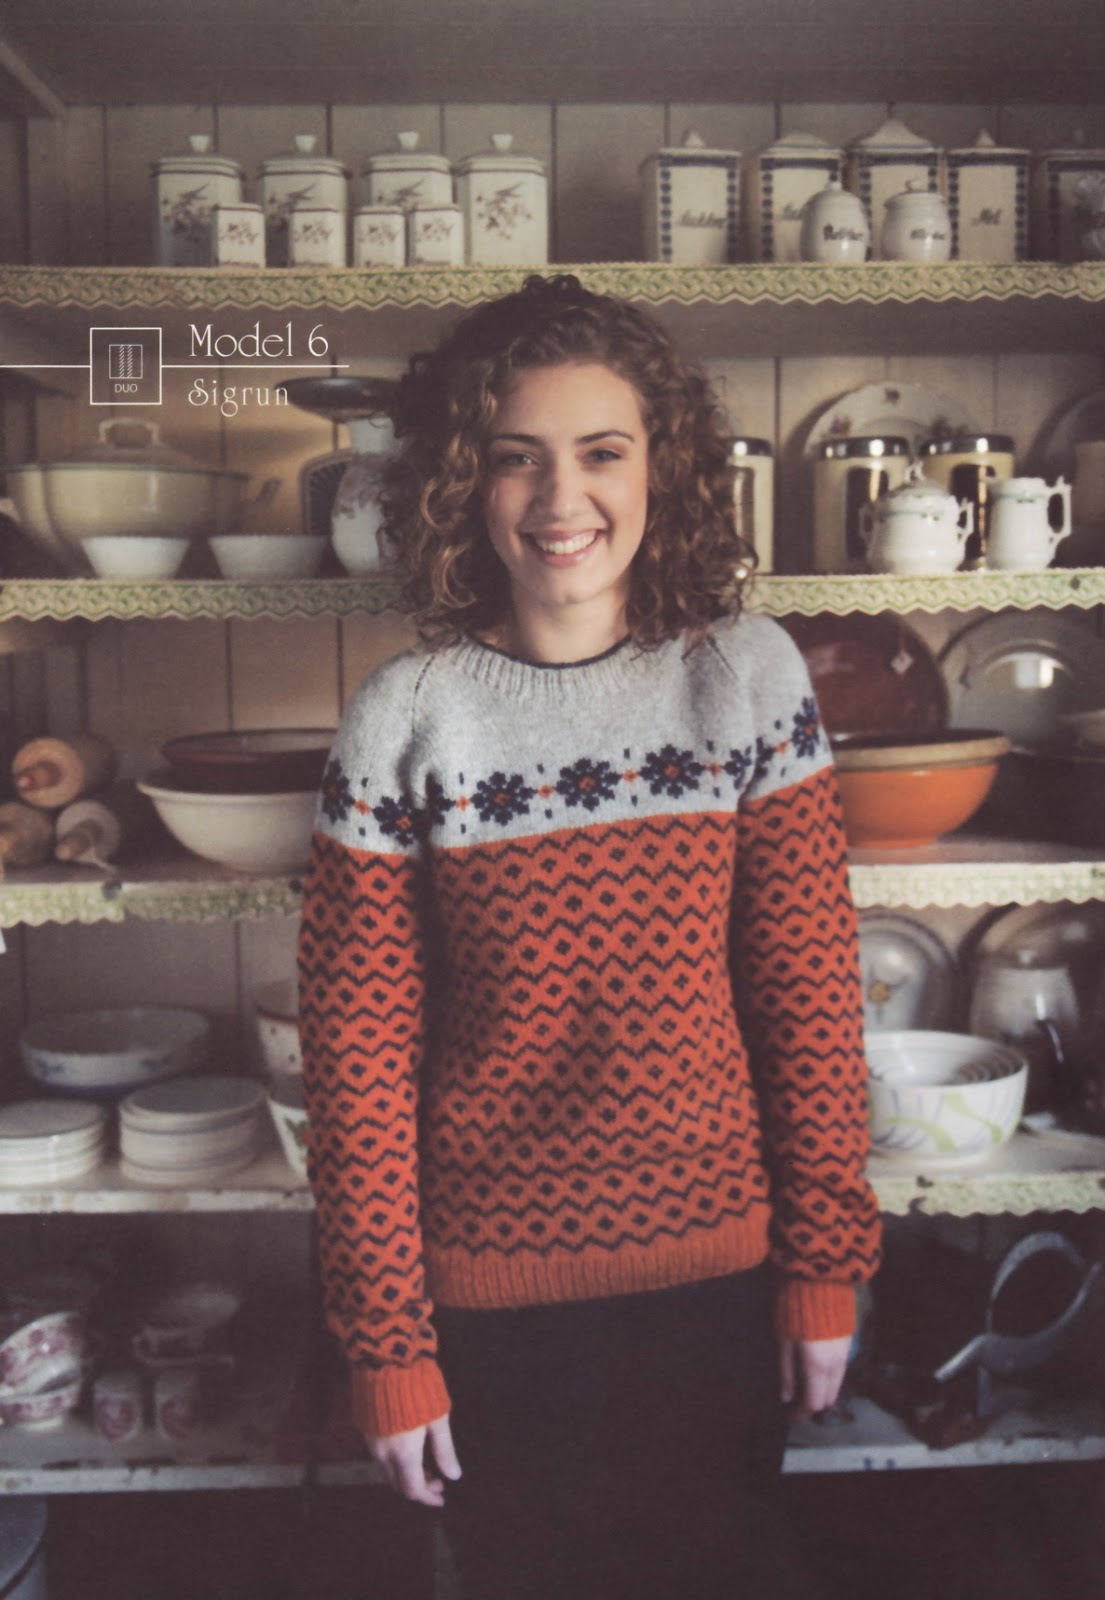 a2e78757a And so I chose Model 6 - Woman s jumper in Orange from Navia pattern book  17. This gorgeous pattern features an all-over traditional pattern on the  lower ...